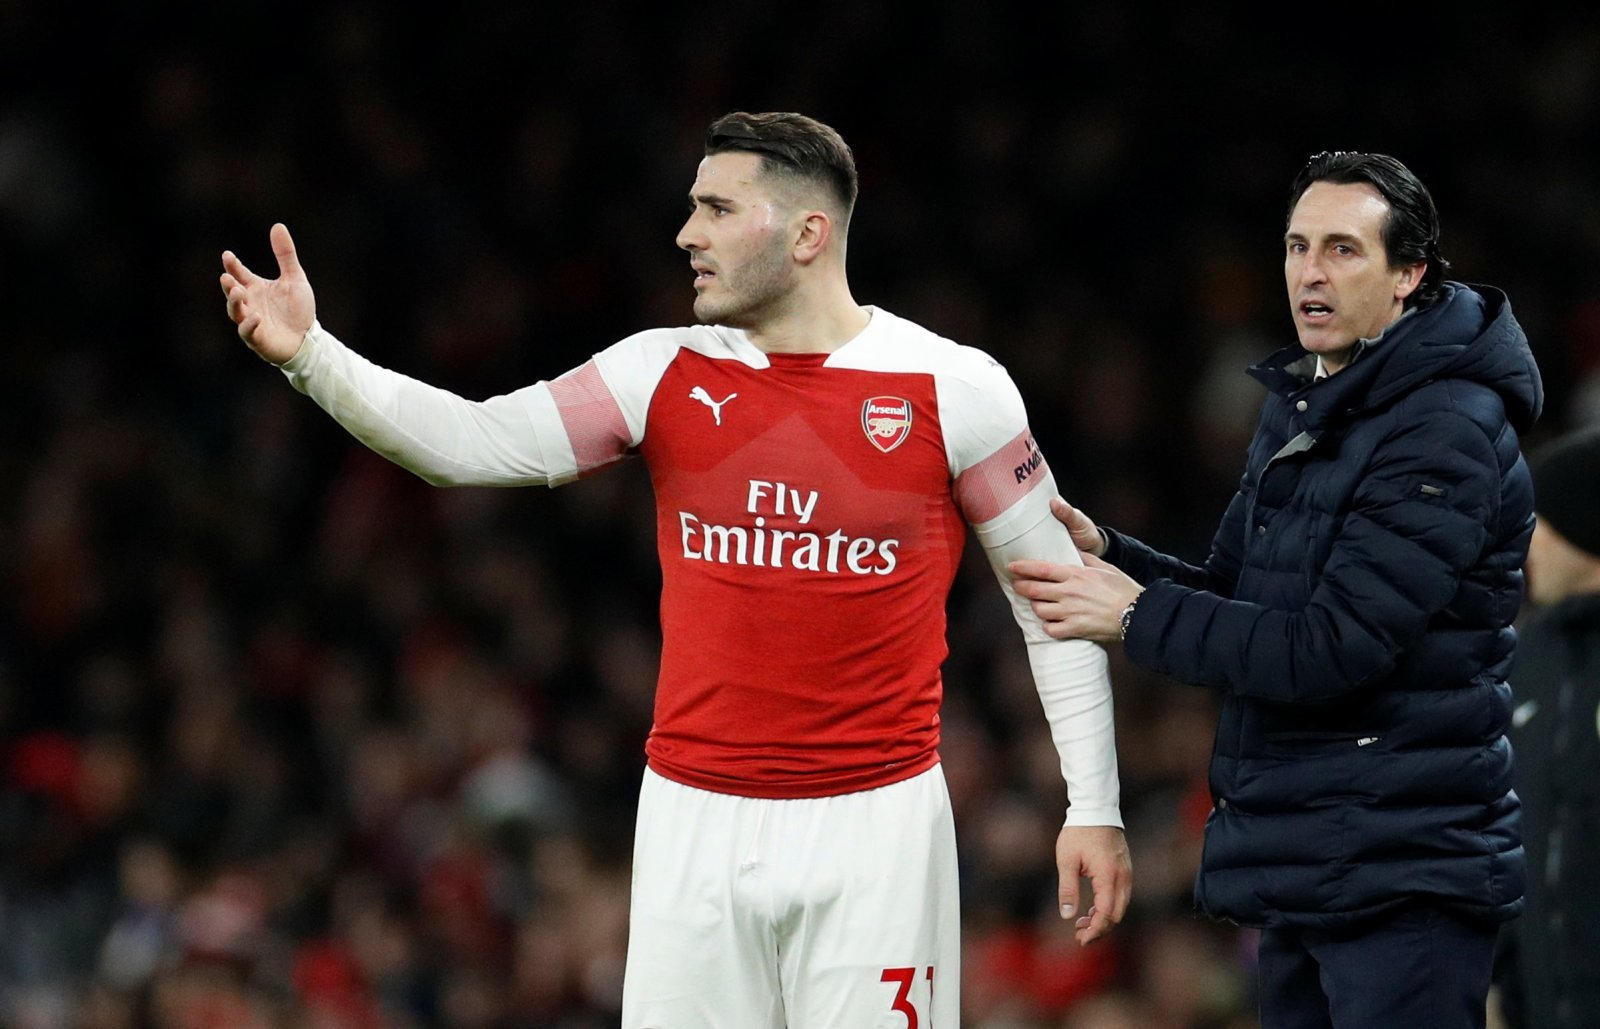 Kolasinac only name worth mentioning following ill-fated Arsenal trip